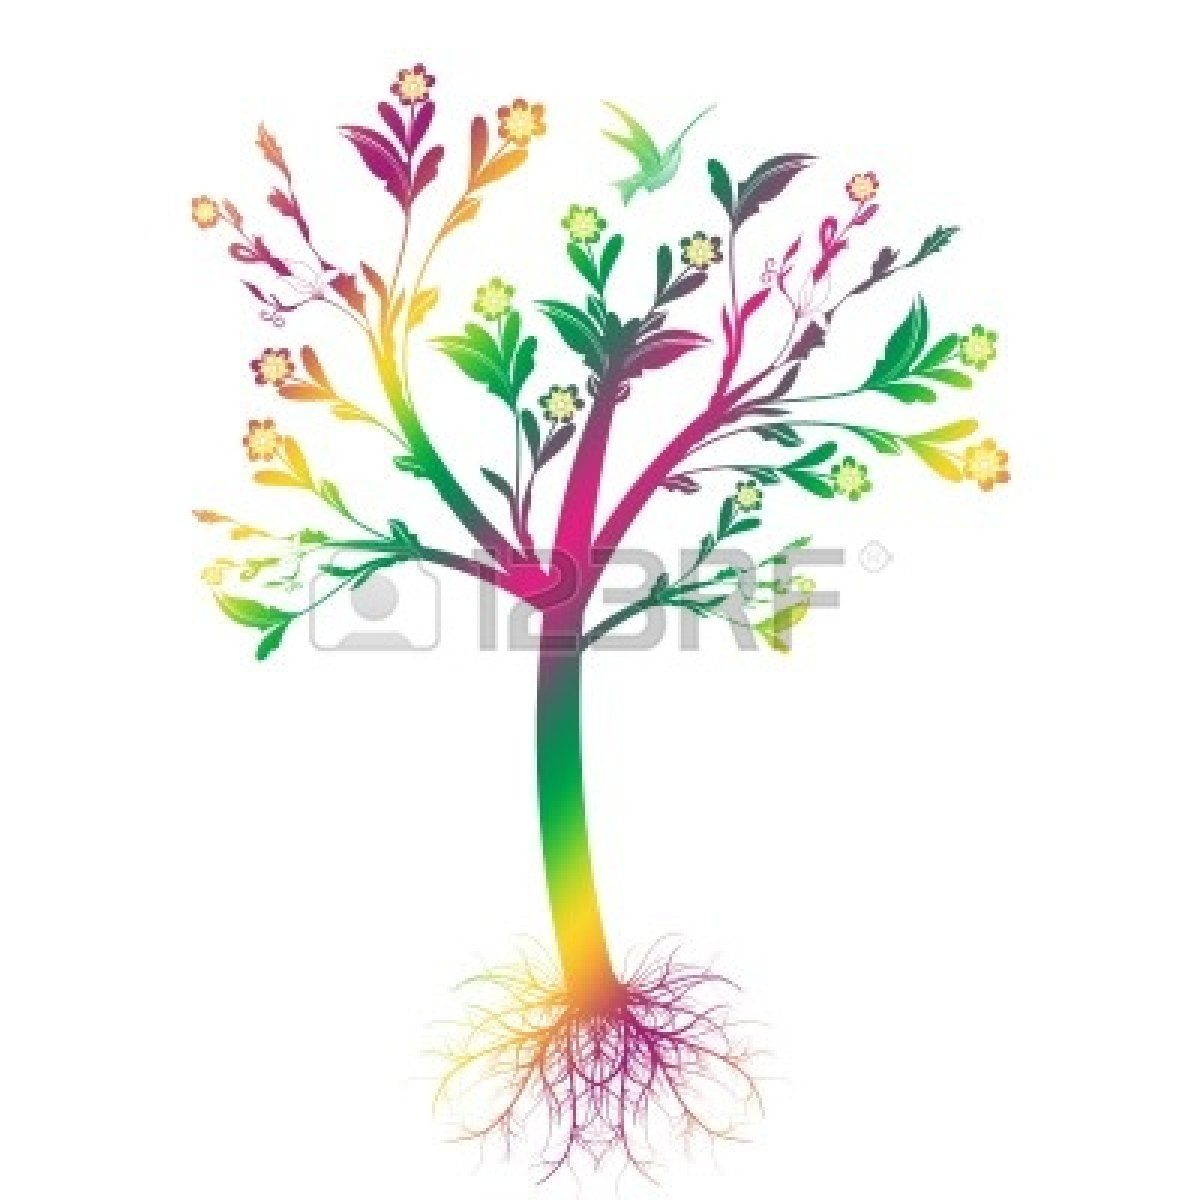 1200x1200 Trees With Roots Clip Art